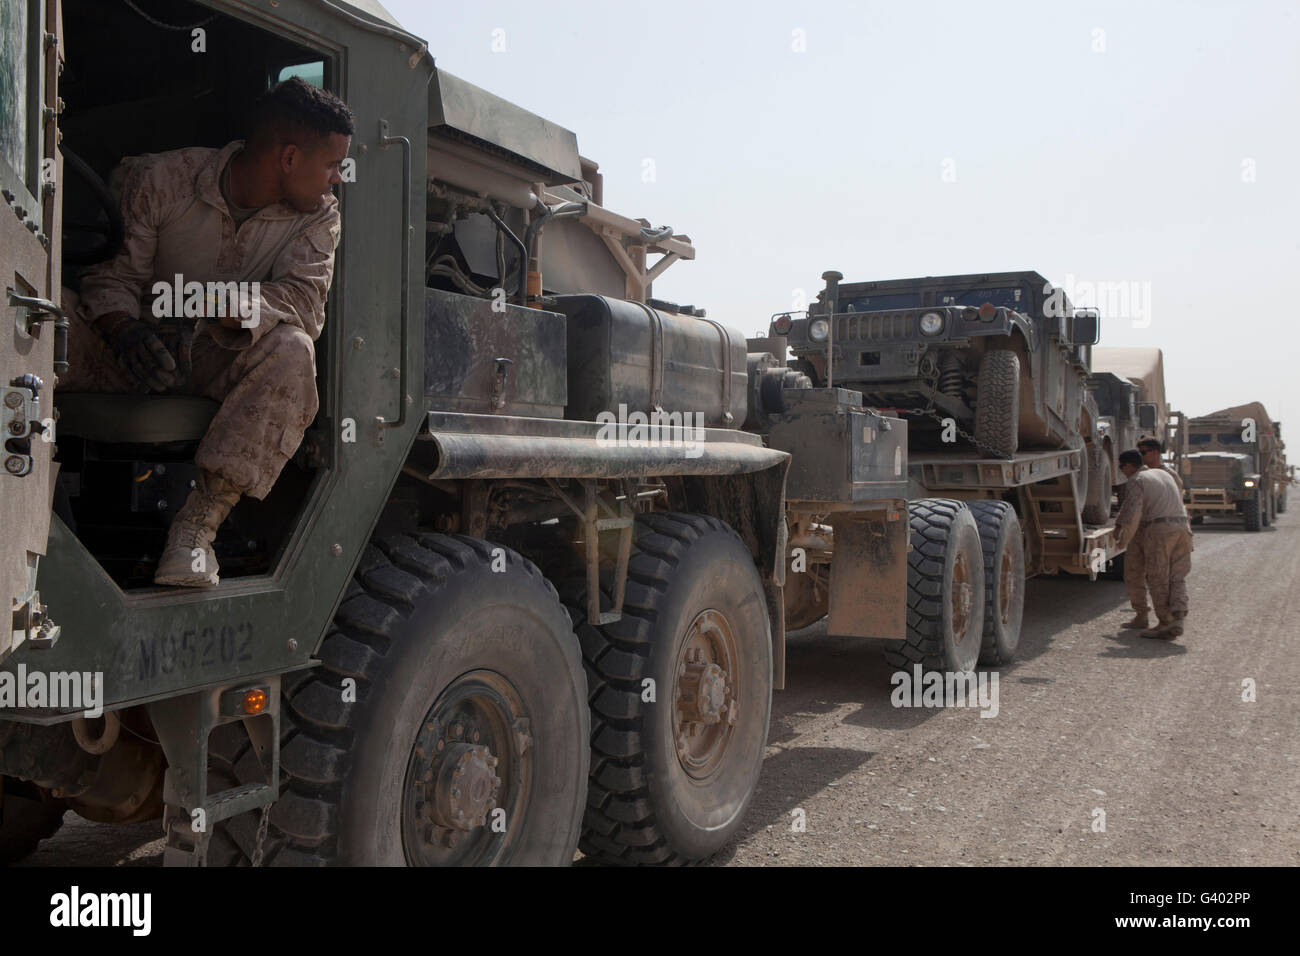 A MK48 Logistics Vehicle System is inspected prior to unloading. - Stock Image